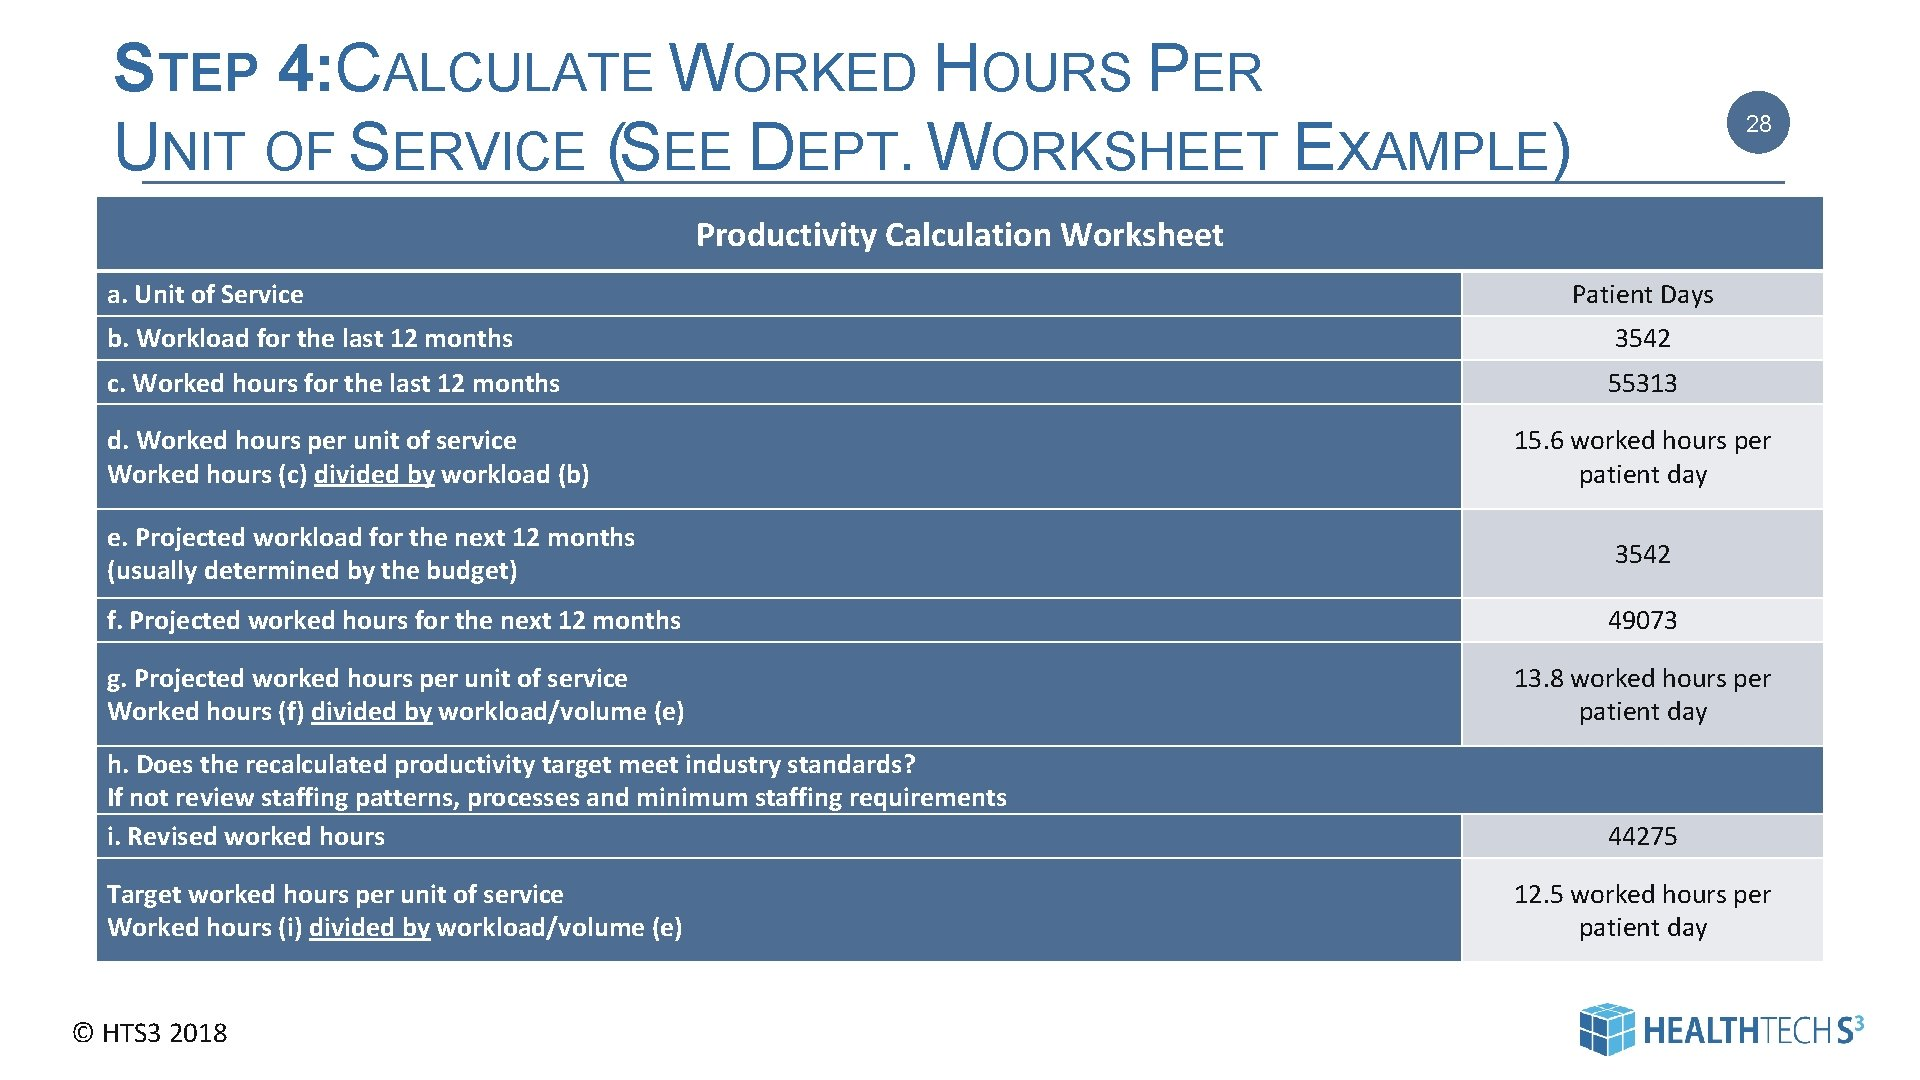 STEP 4: CALCULATE WORKED HOURS PER UNIT OF SERVICE (SEE DEPT. WORKSHEET EXAMPLE) 28